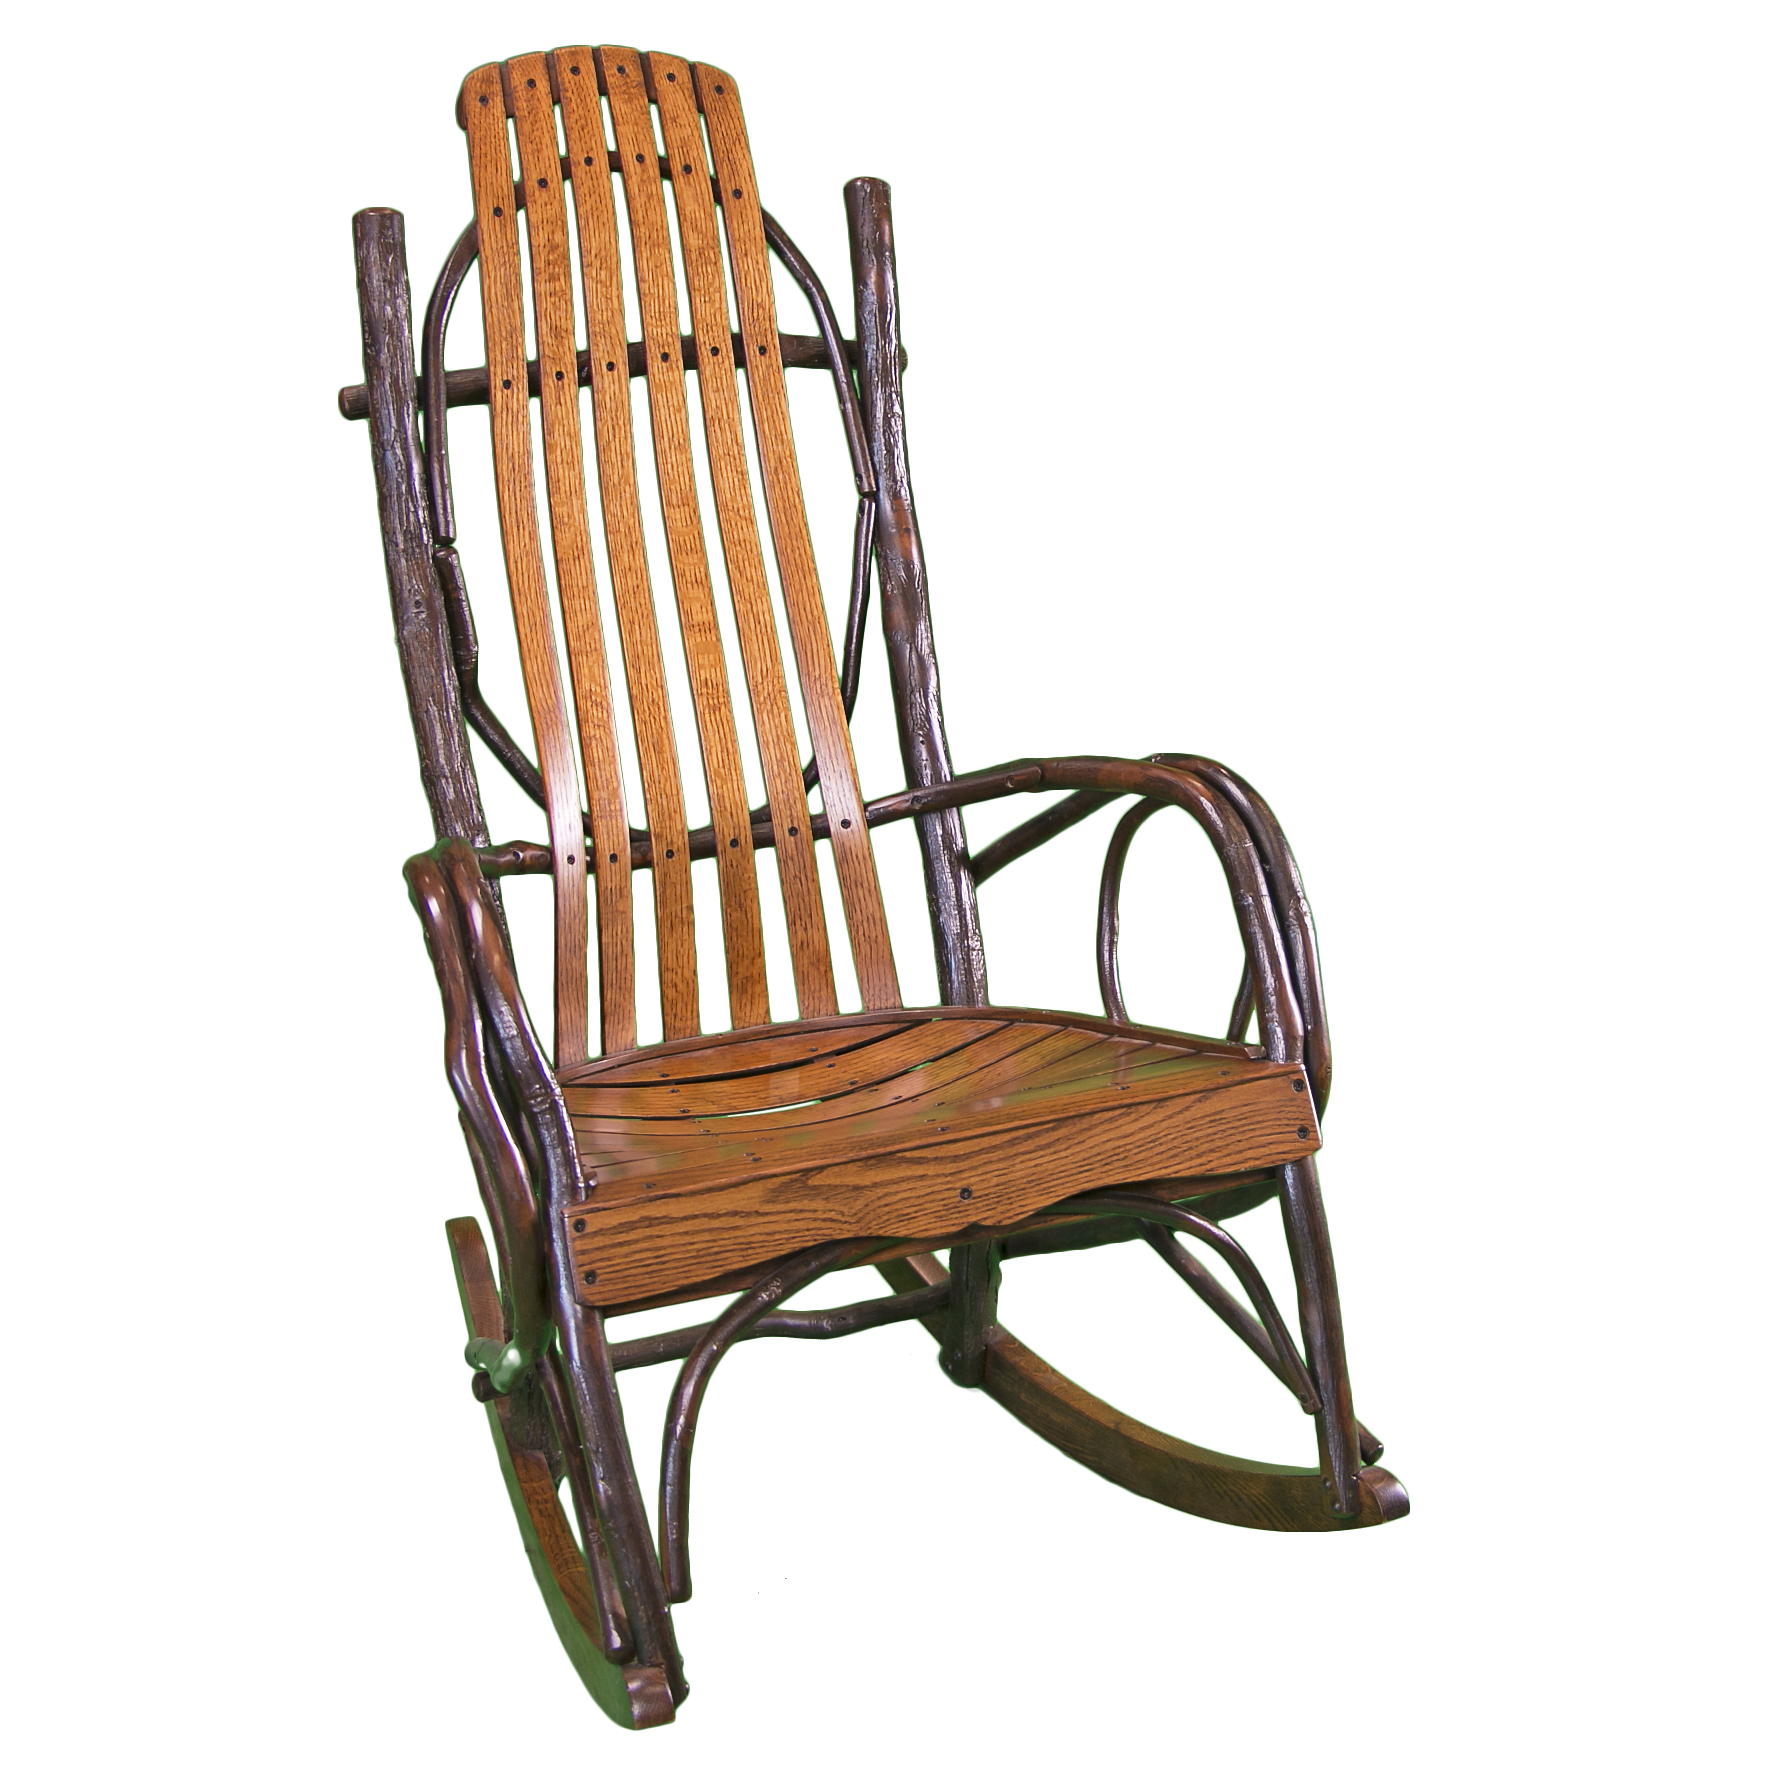 Wood Rocking Chair Wooden Rocking Chair